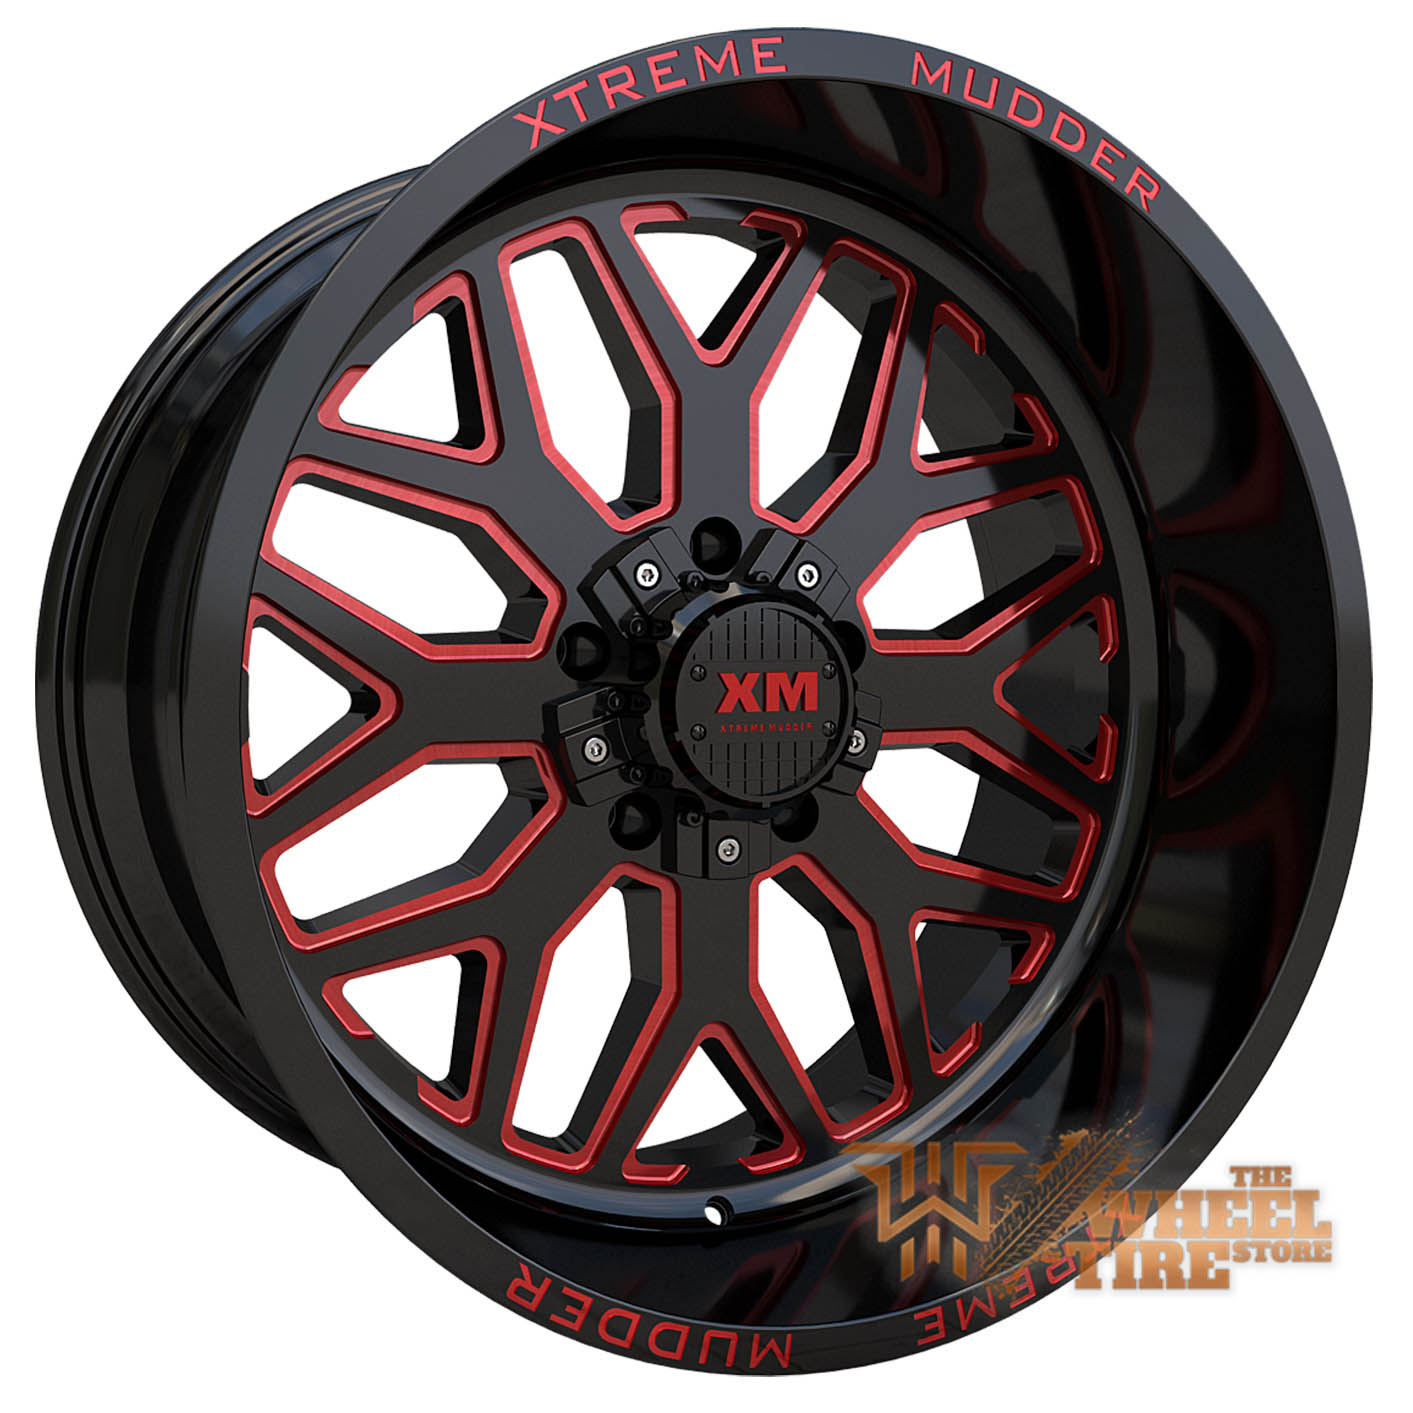 XTREME MUDDER XM-401 Wheel in Gloss Black Red Milled (Set of 4)